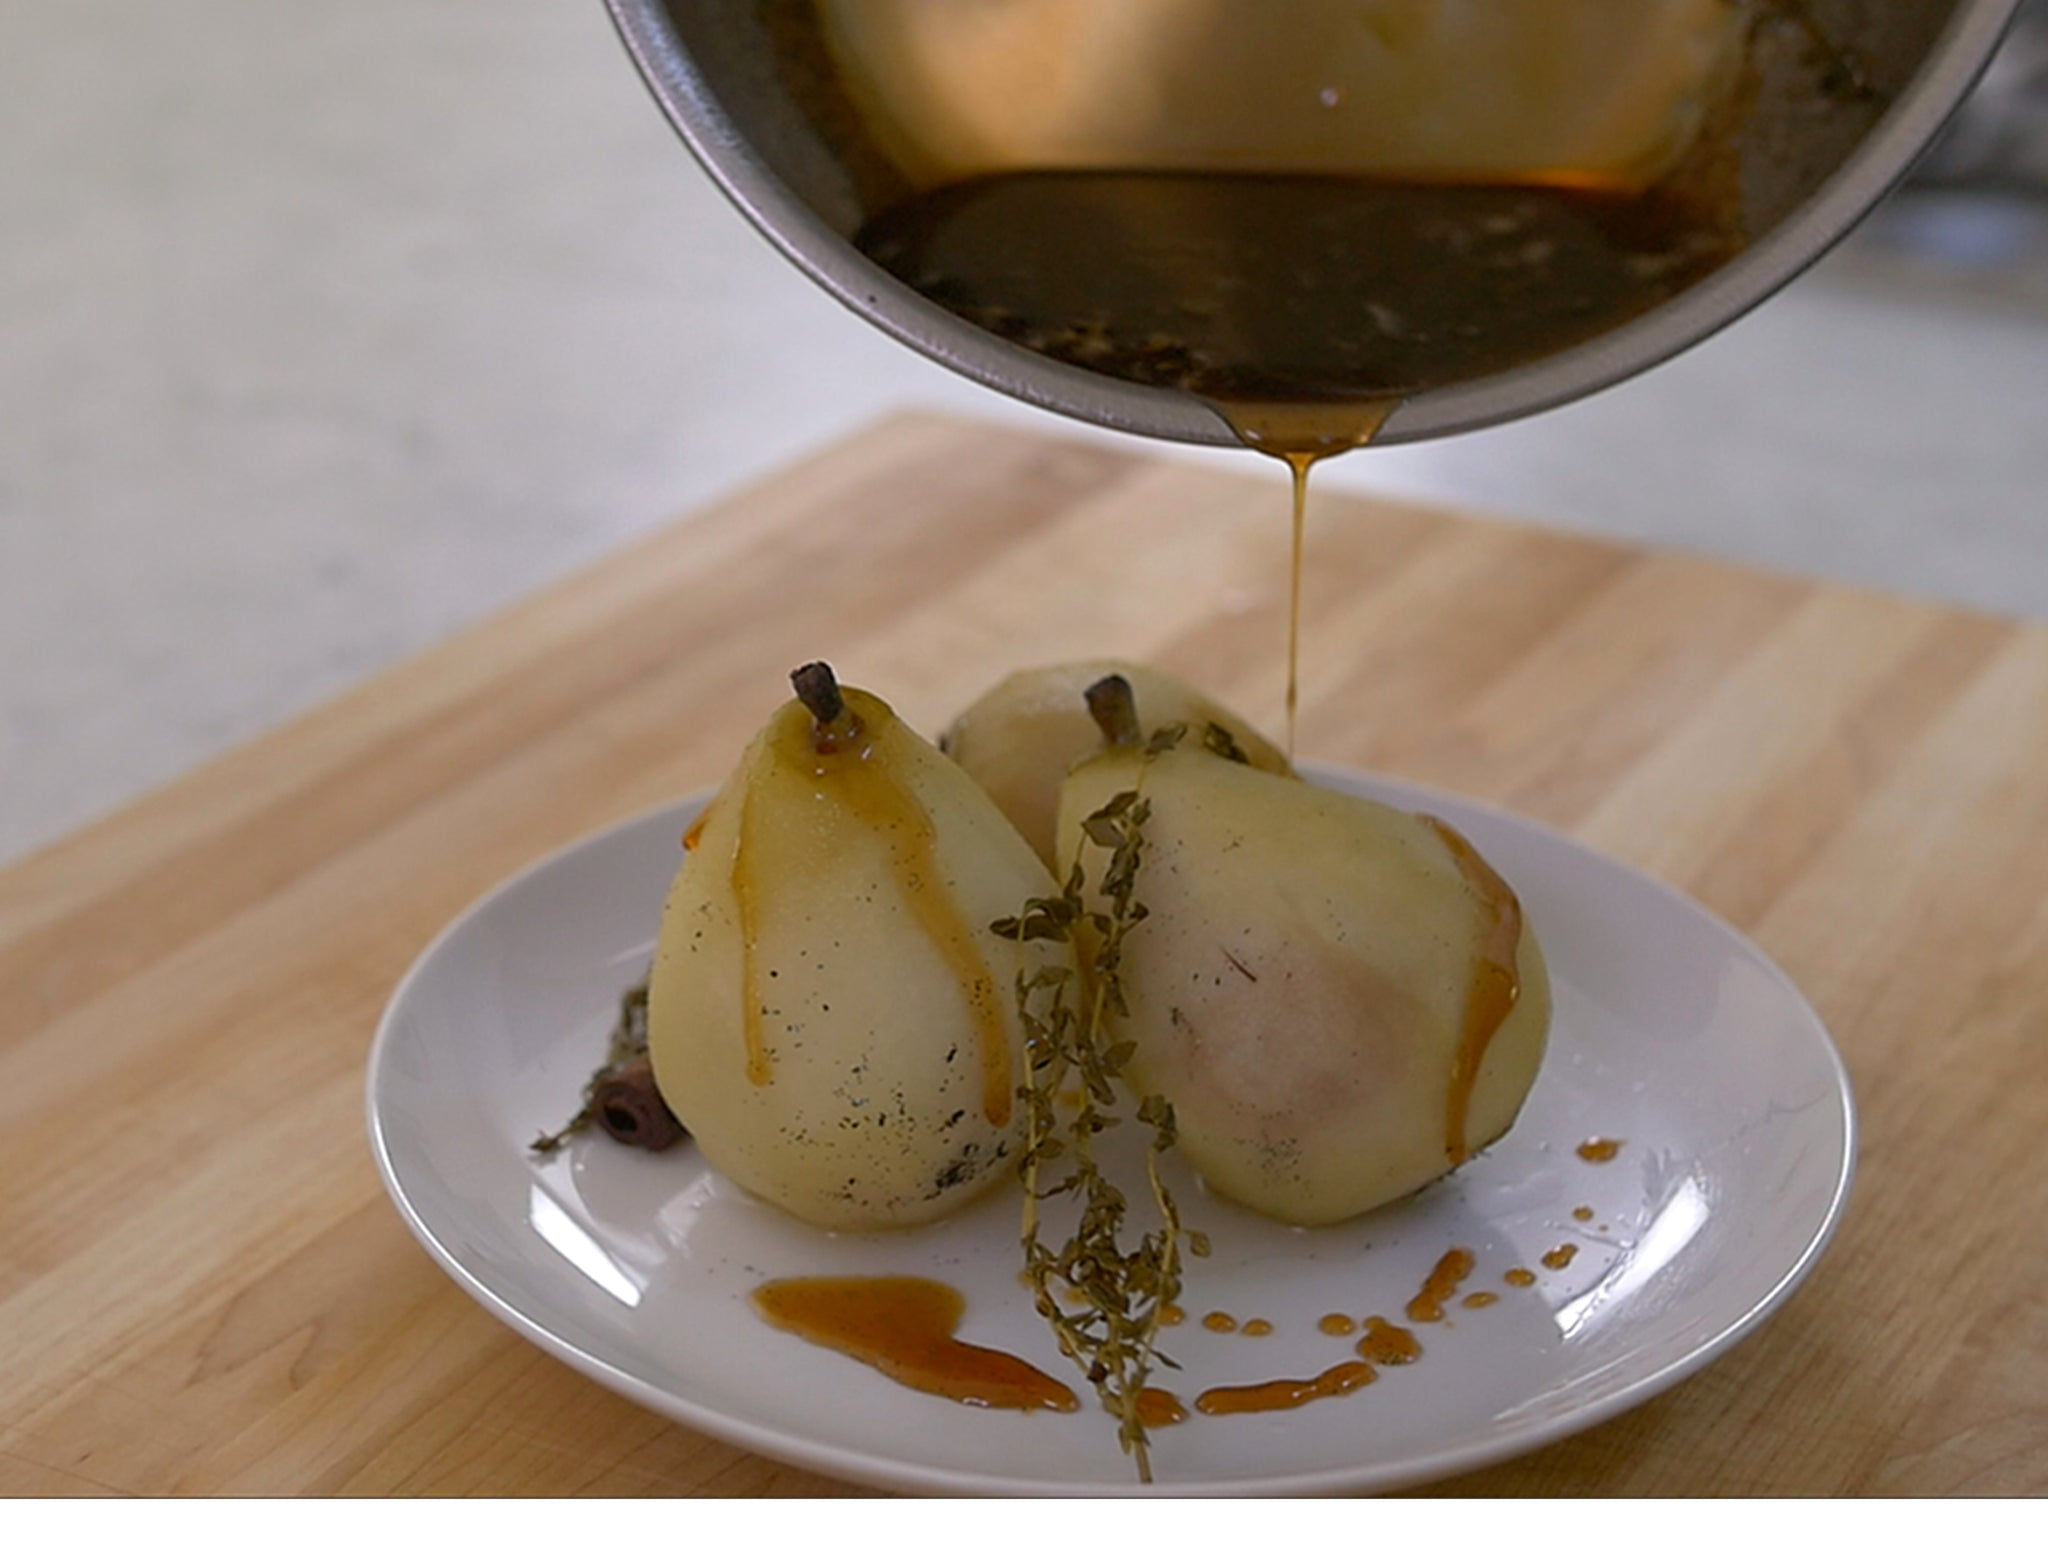 Pouring caramel sauce onto poached pears is less messy with the Misen Saucier, which features a dripless pouring edge.